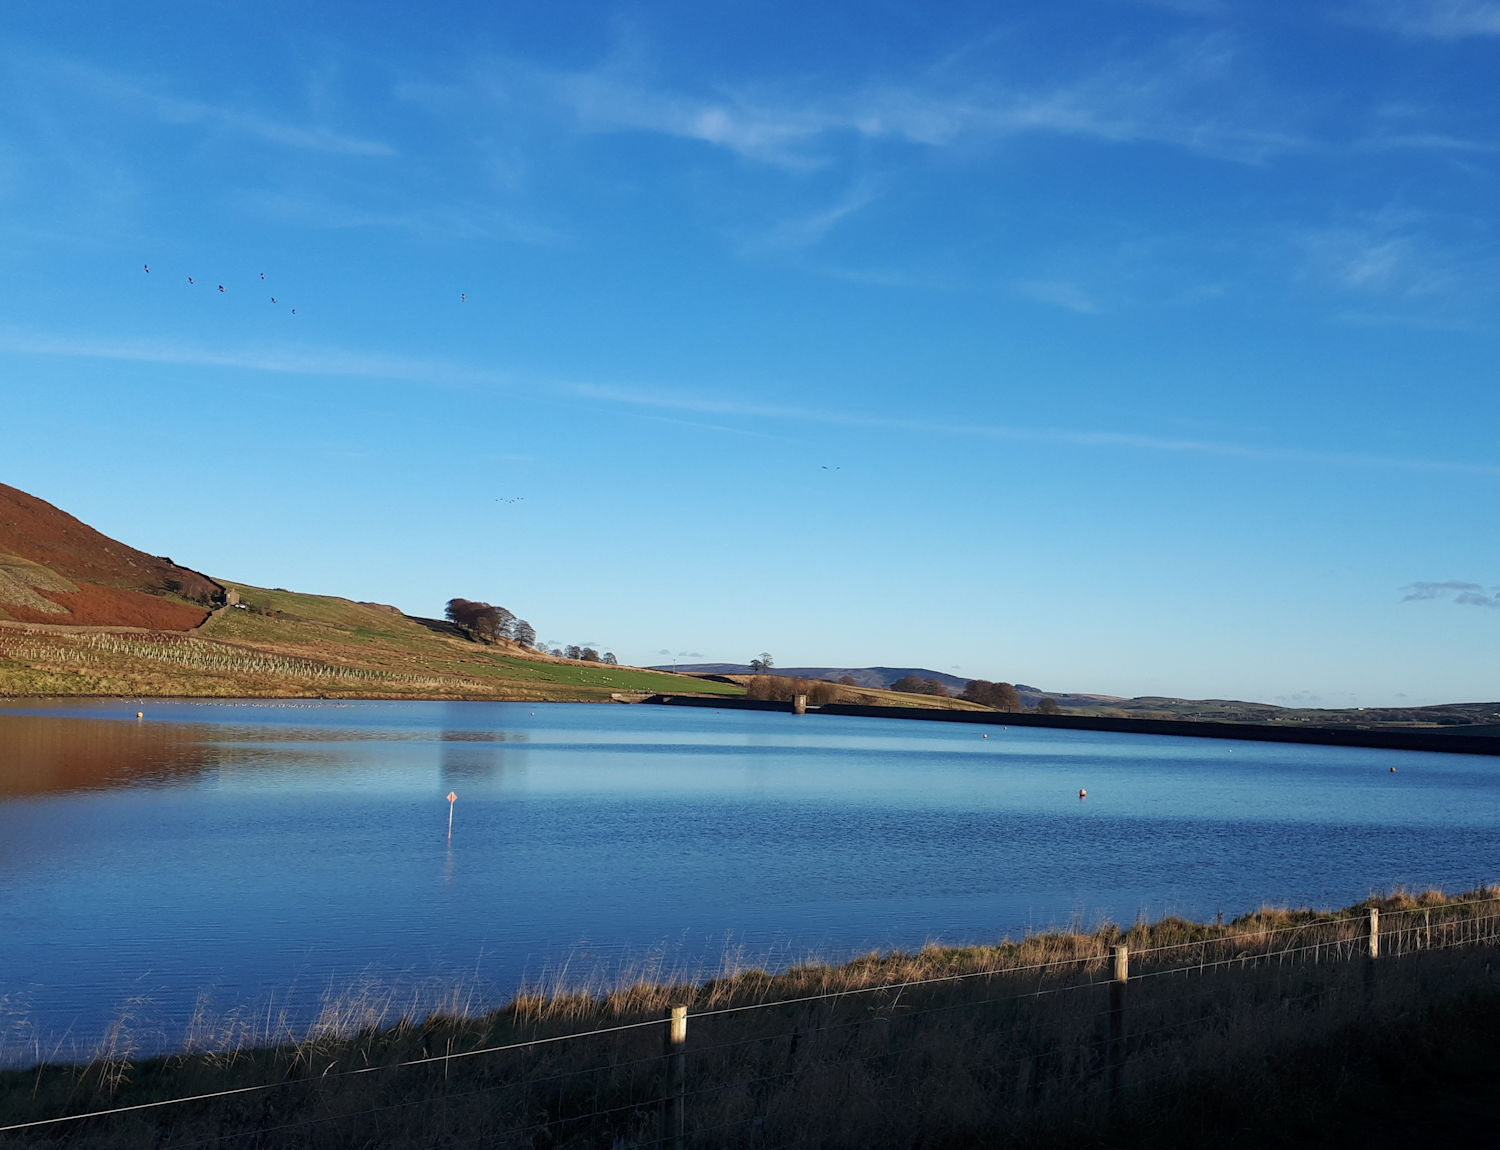 The dam wall at Embsay Reservoir